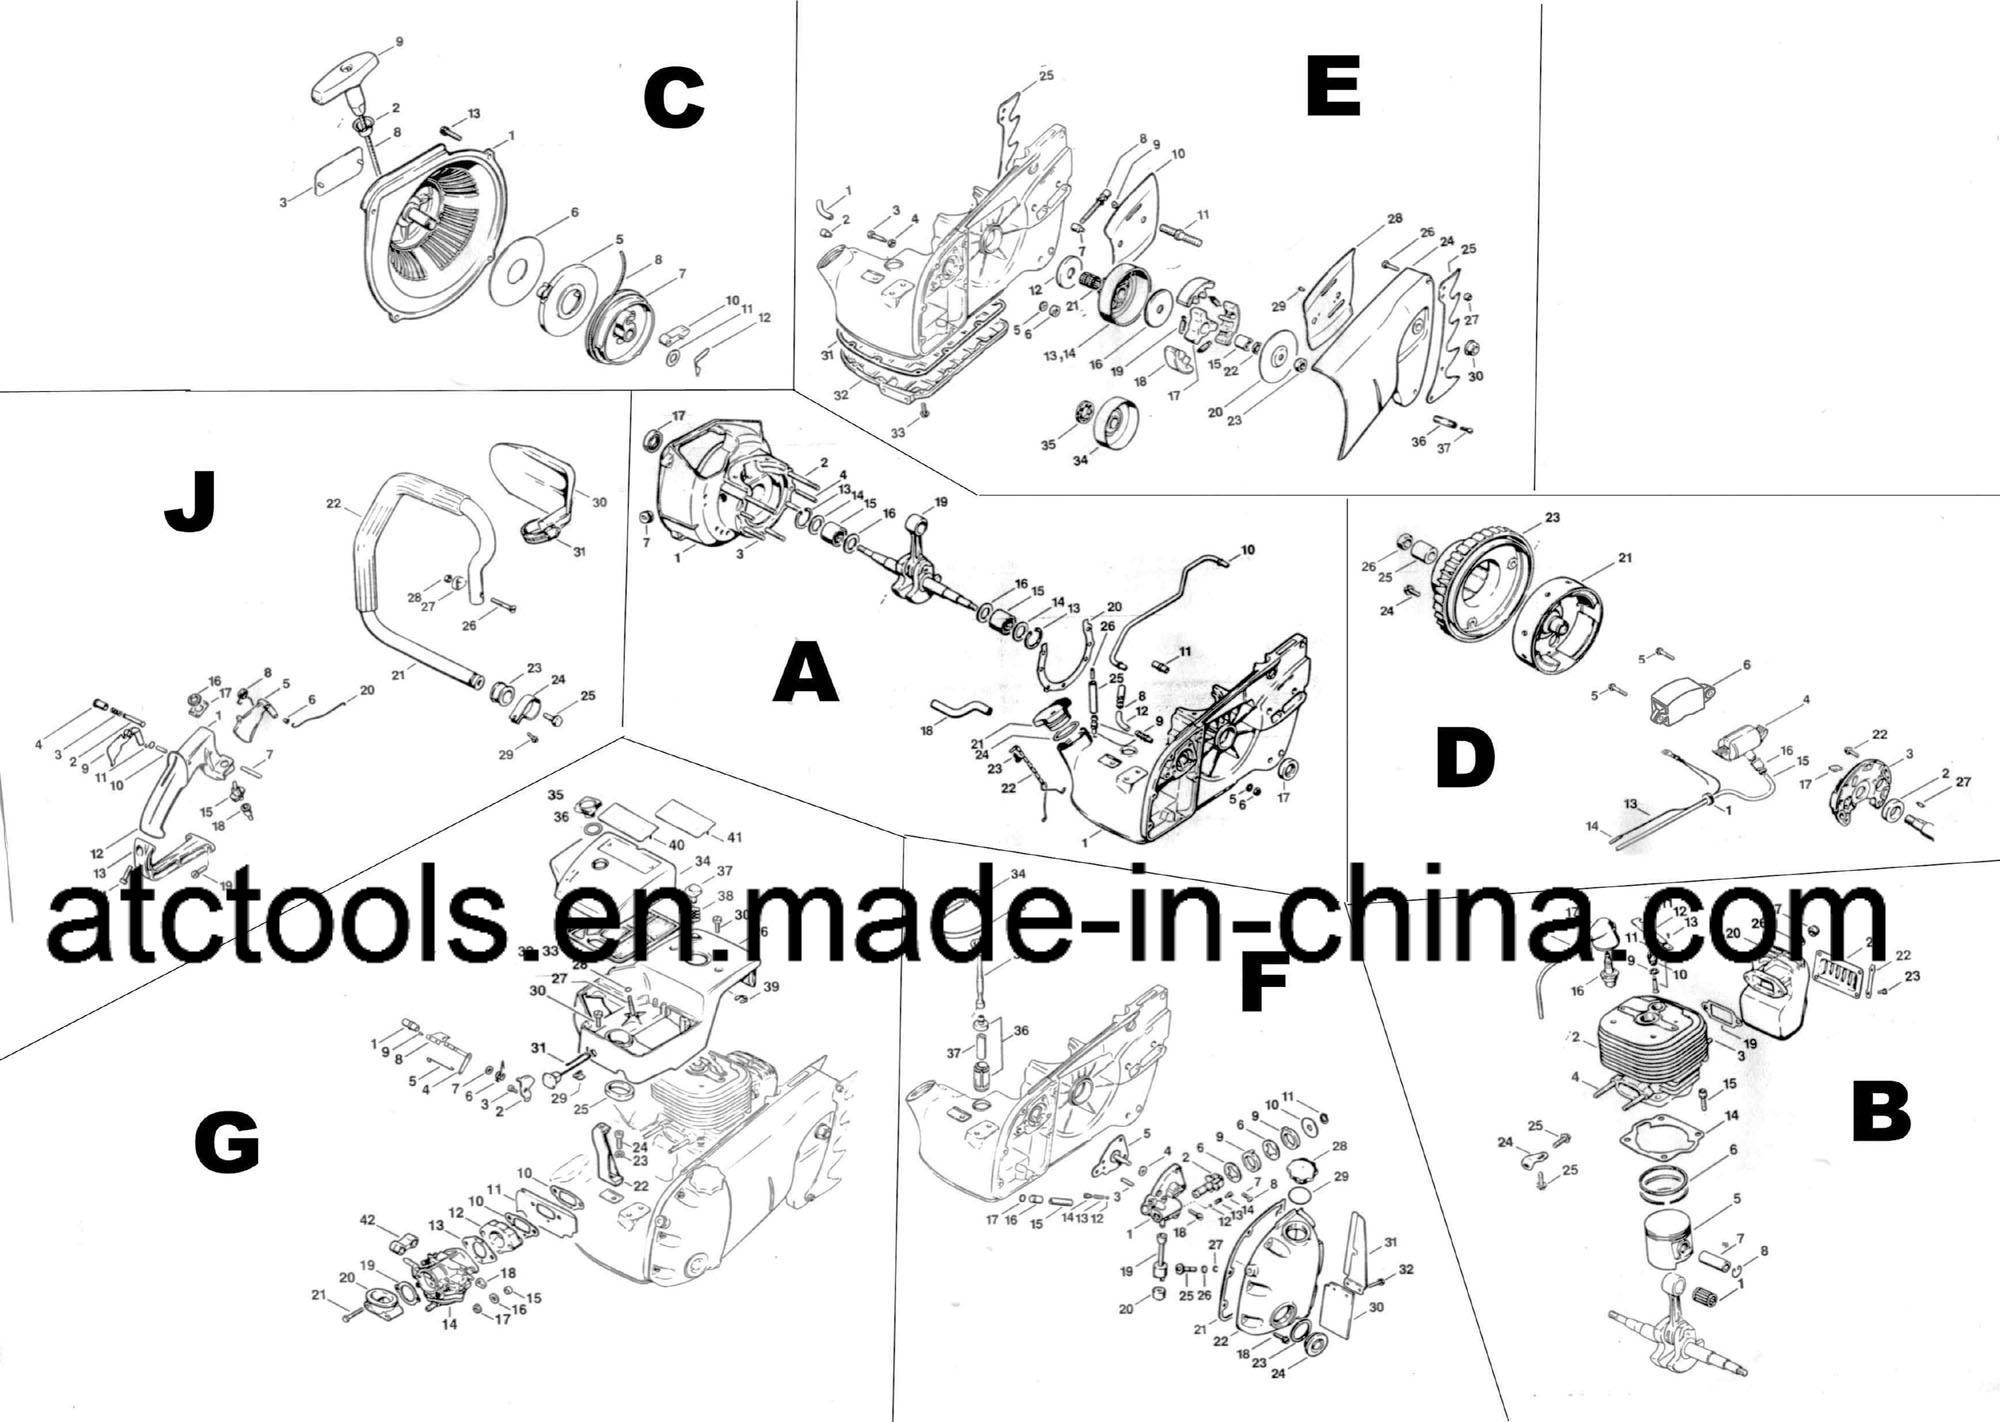 stihl 038 av parts diagram  stihl  free engine image for